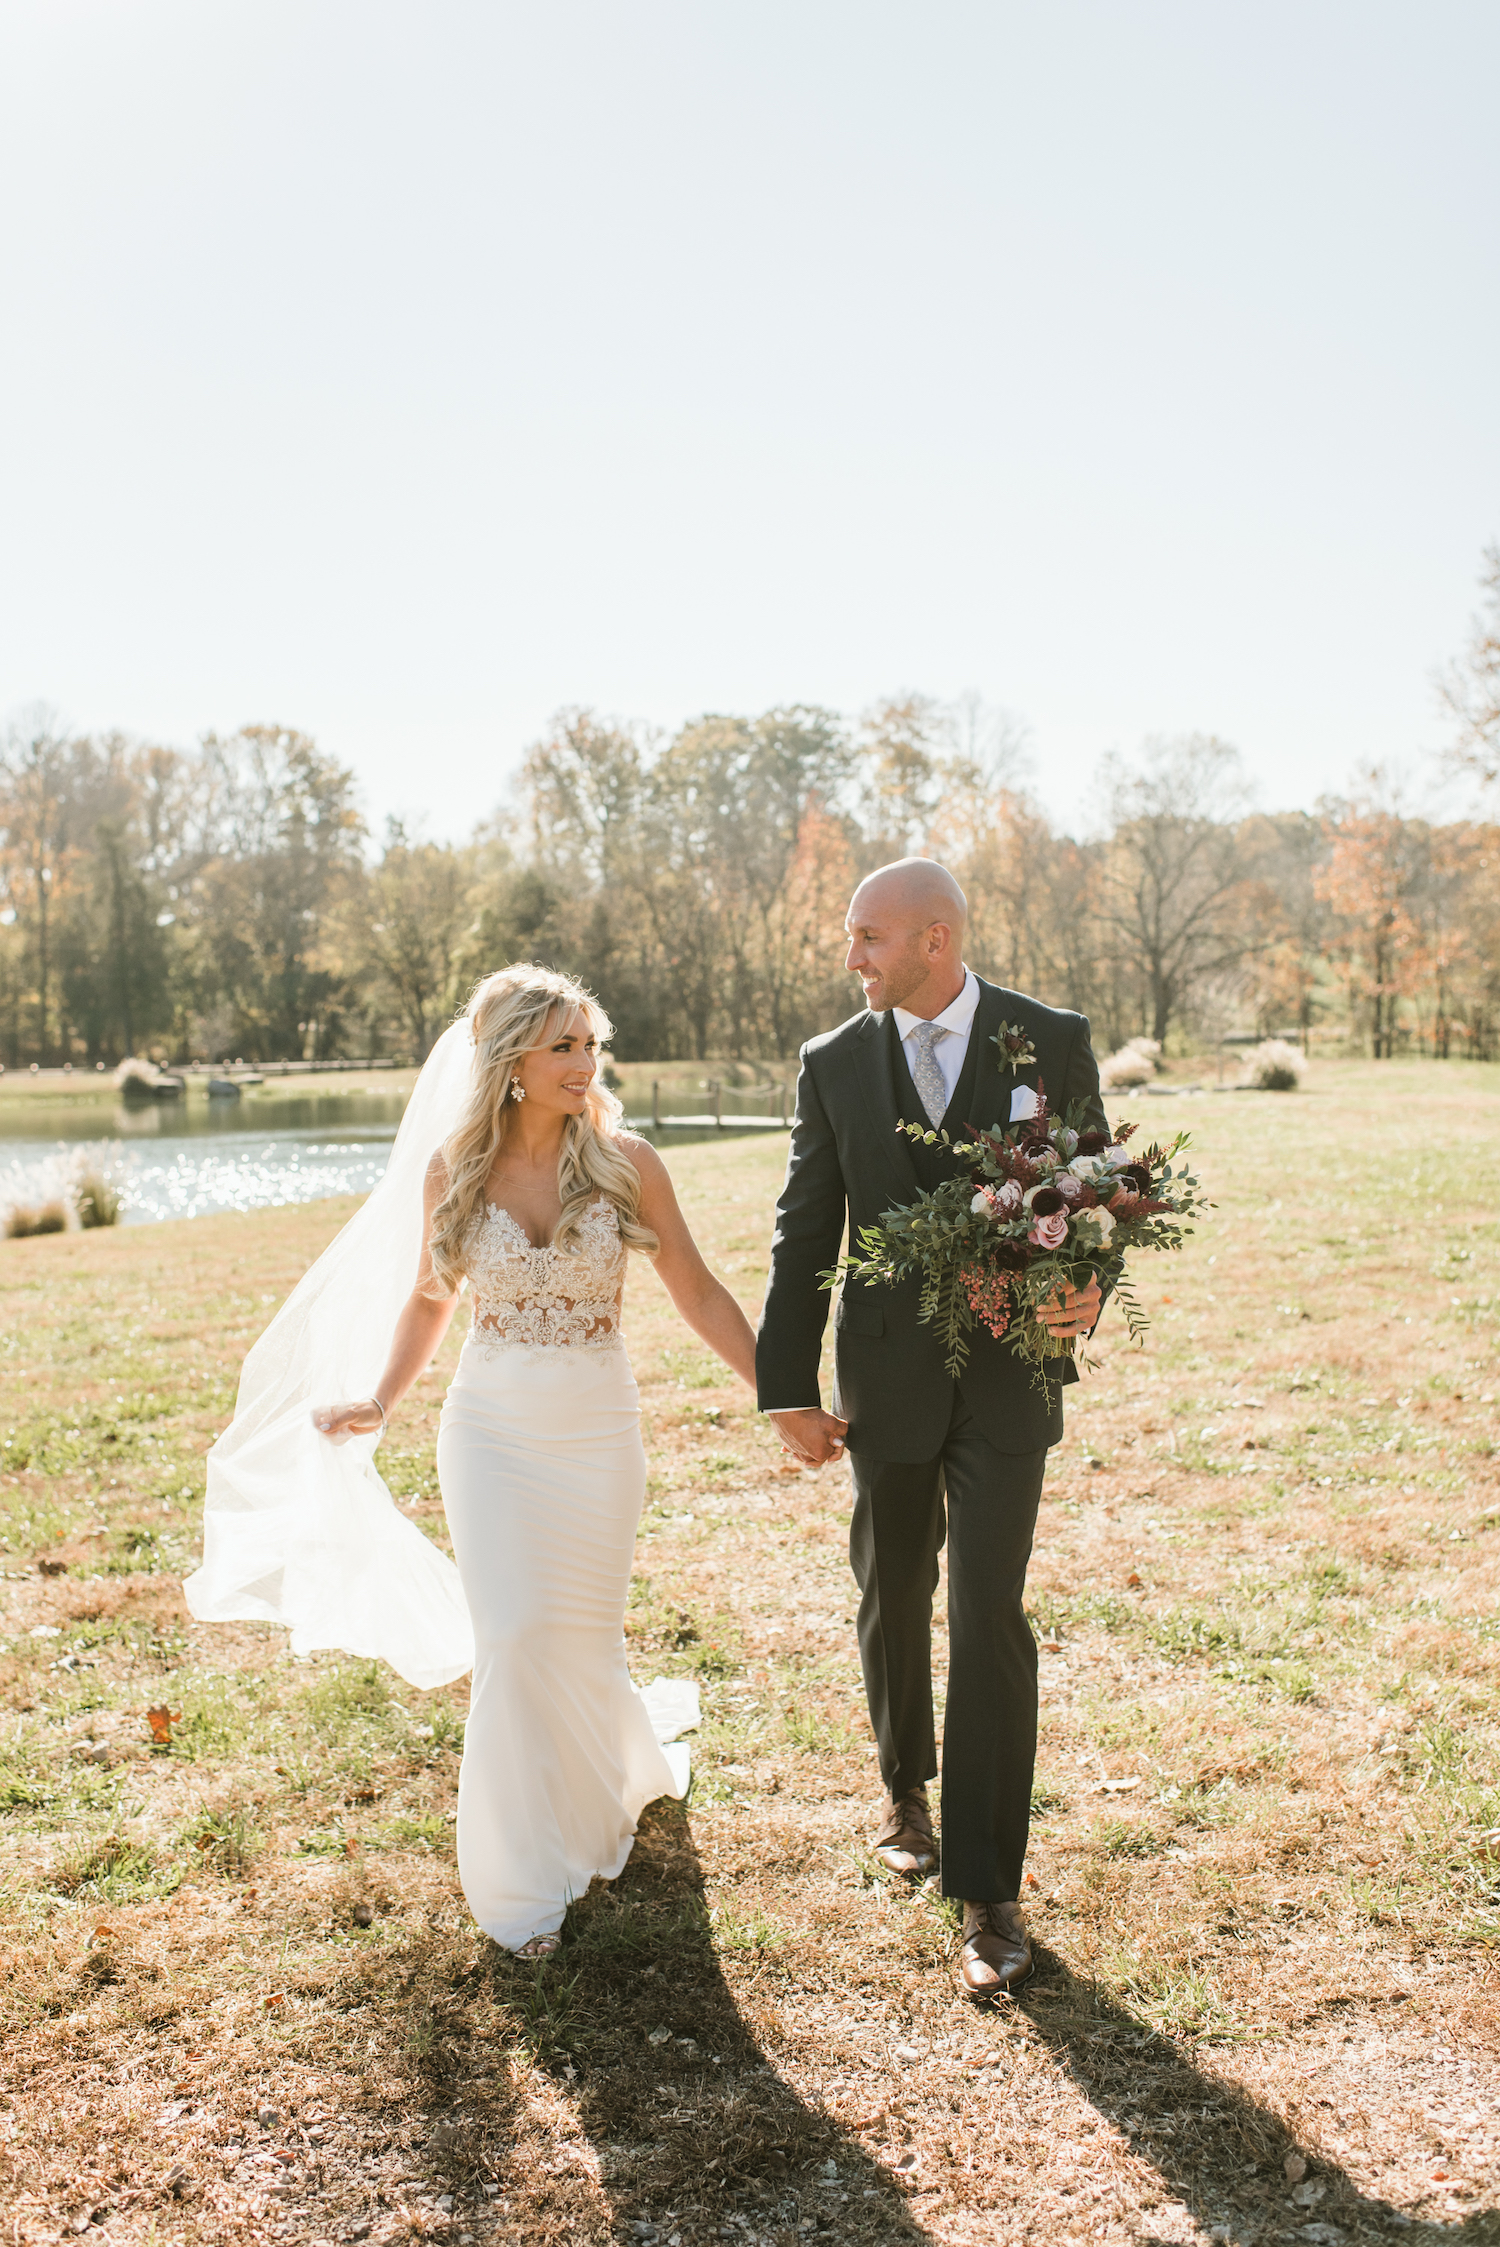 Shelby Rae Photographs featured on Nashville Bride Guide